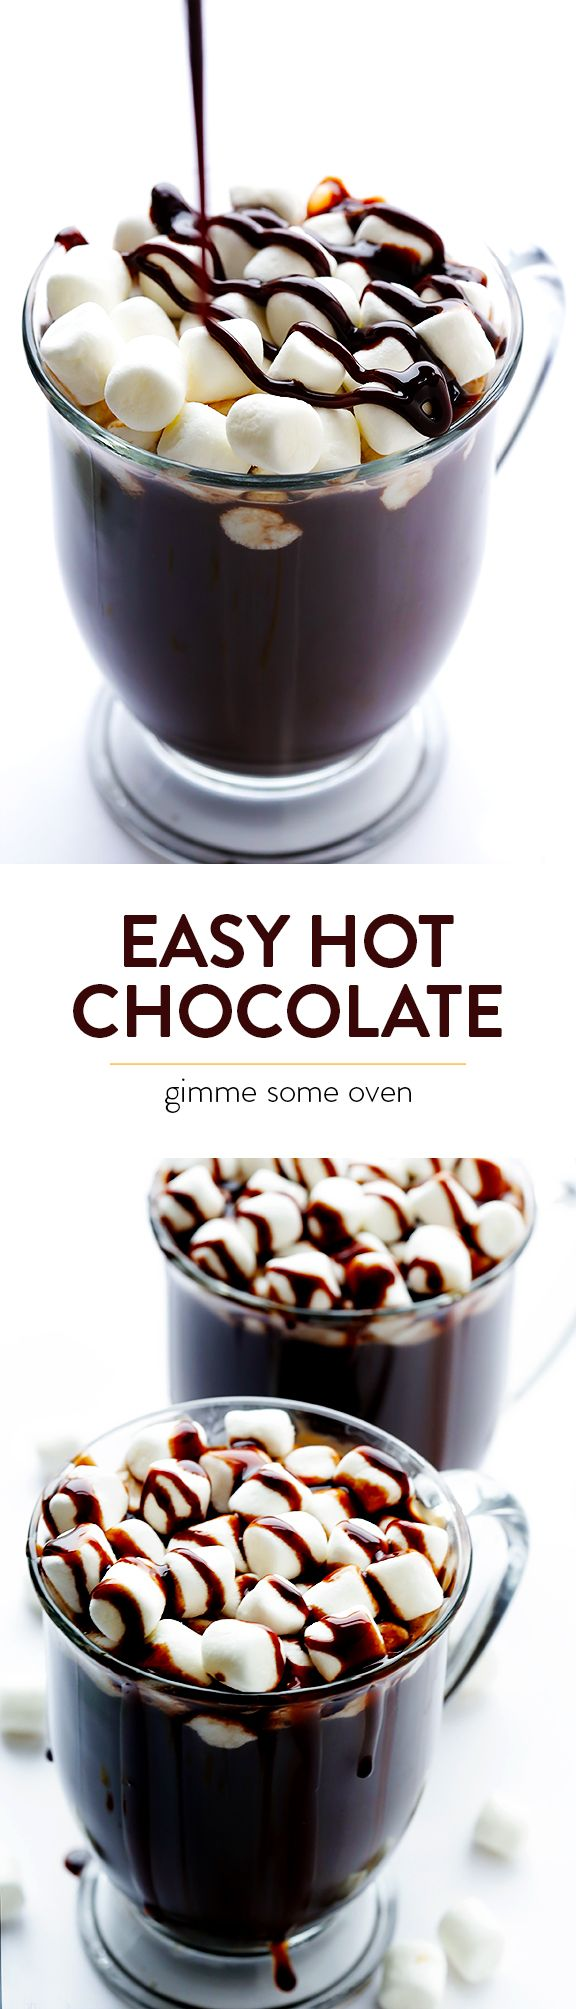 All you need are 5 easy ingredients to make delicious homemade hot chocolate from scratch | gimmesomeoven.com